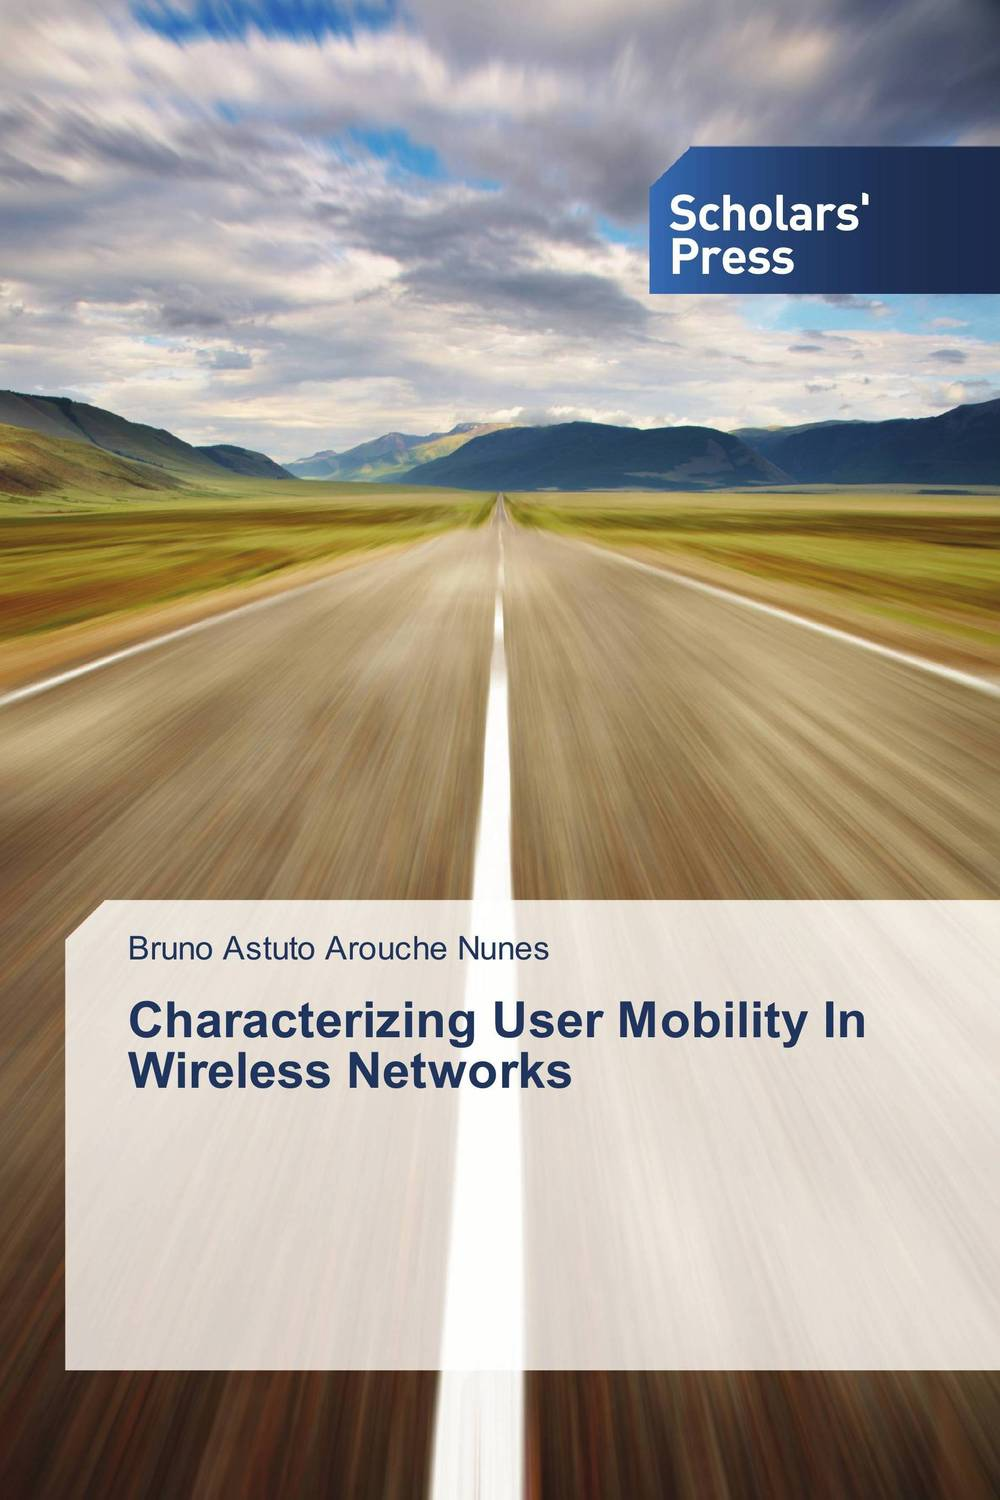 Characterizing User Mobility In Wireless Networks characterizing user mobility in wireless networks